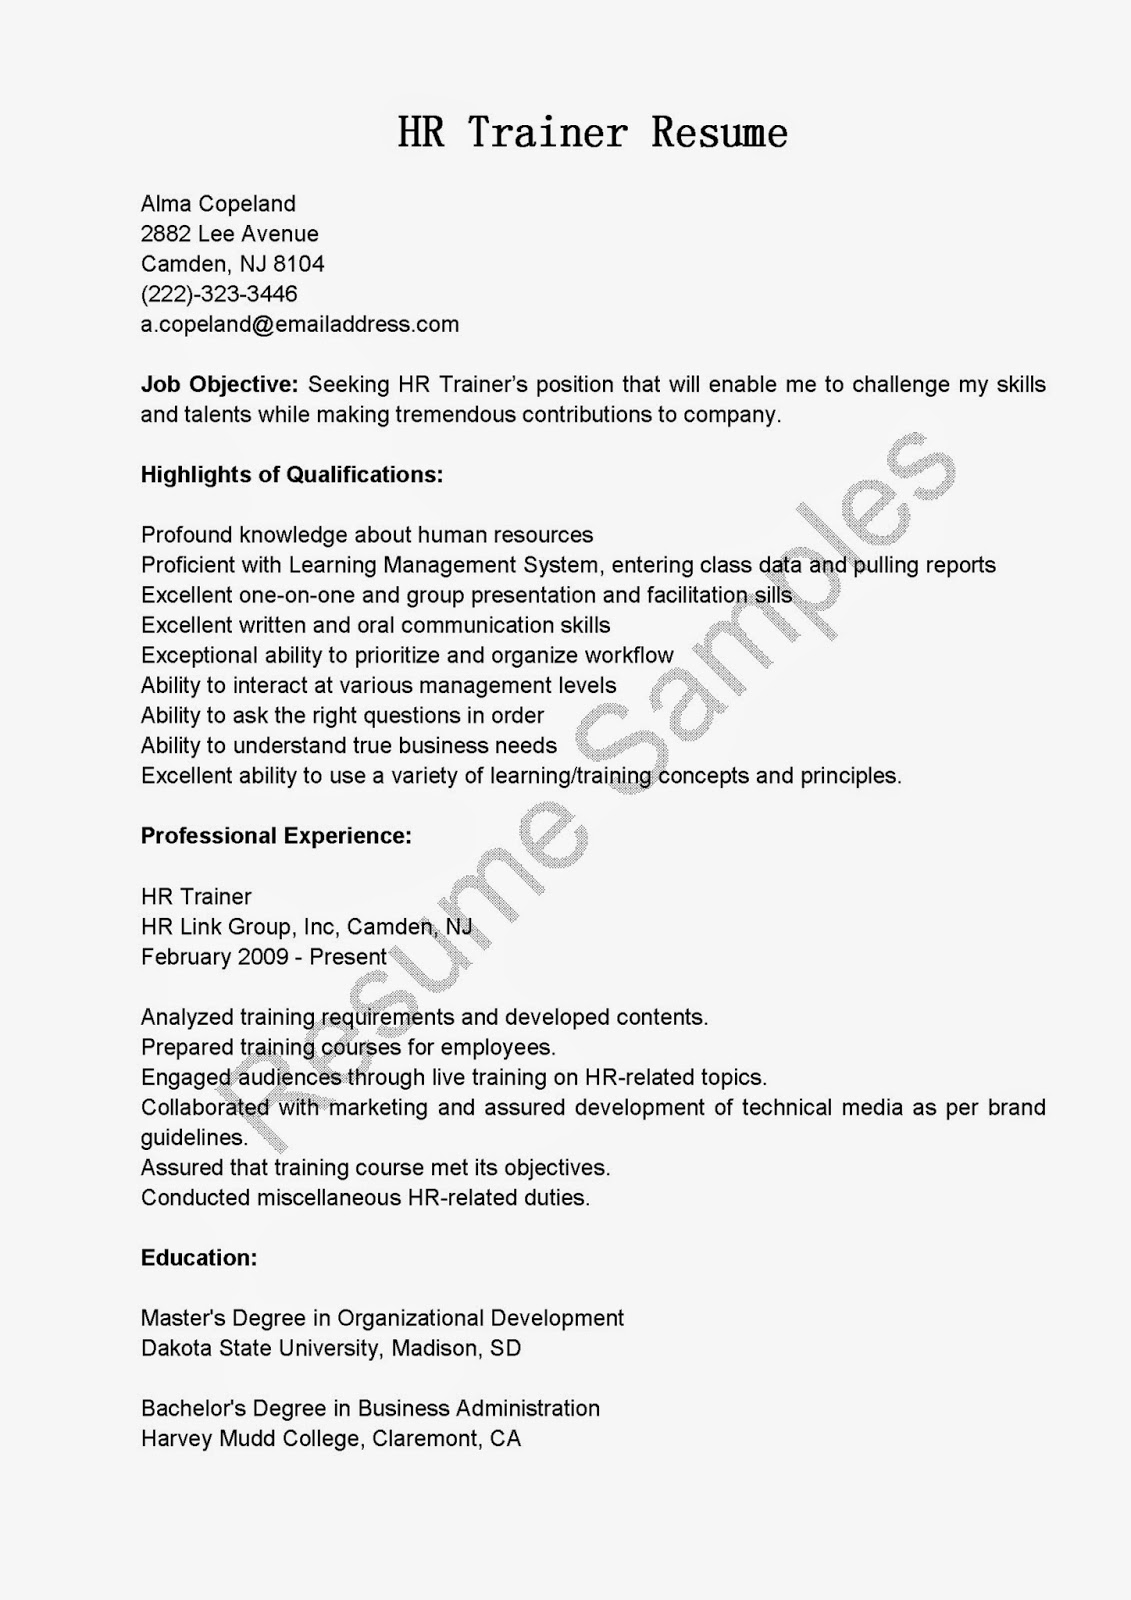 Sample Trainer Resume Resume Samples Hr Trainer Resume Sample